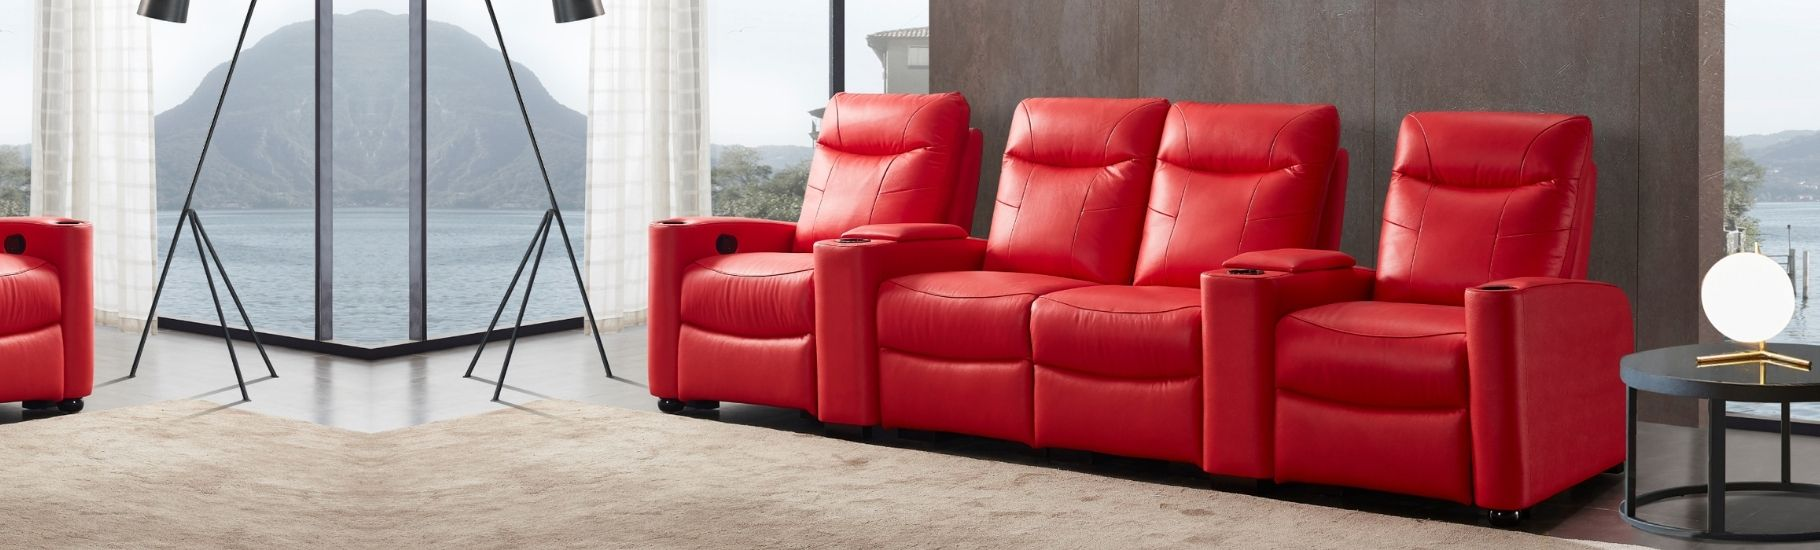 Customisable Leather Lounges Desired Living Sydney Melbourne Brisbane Perth Adelaide